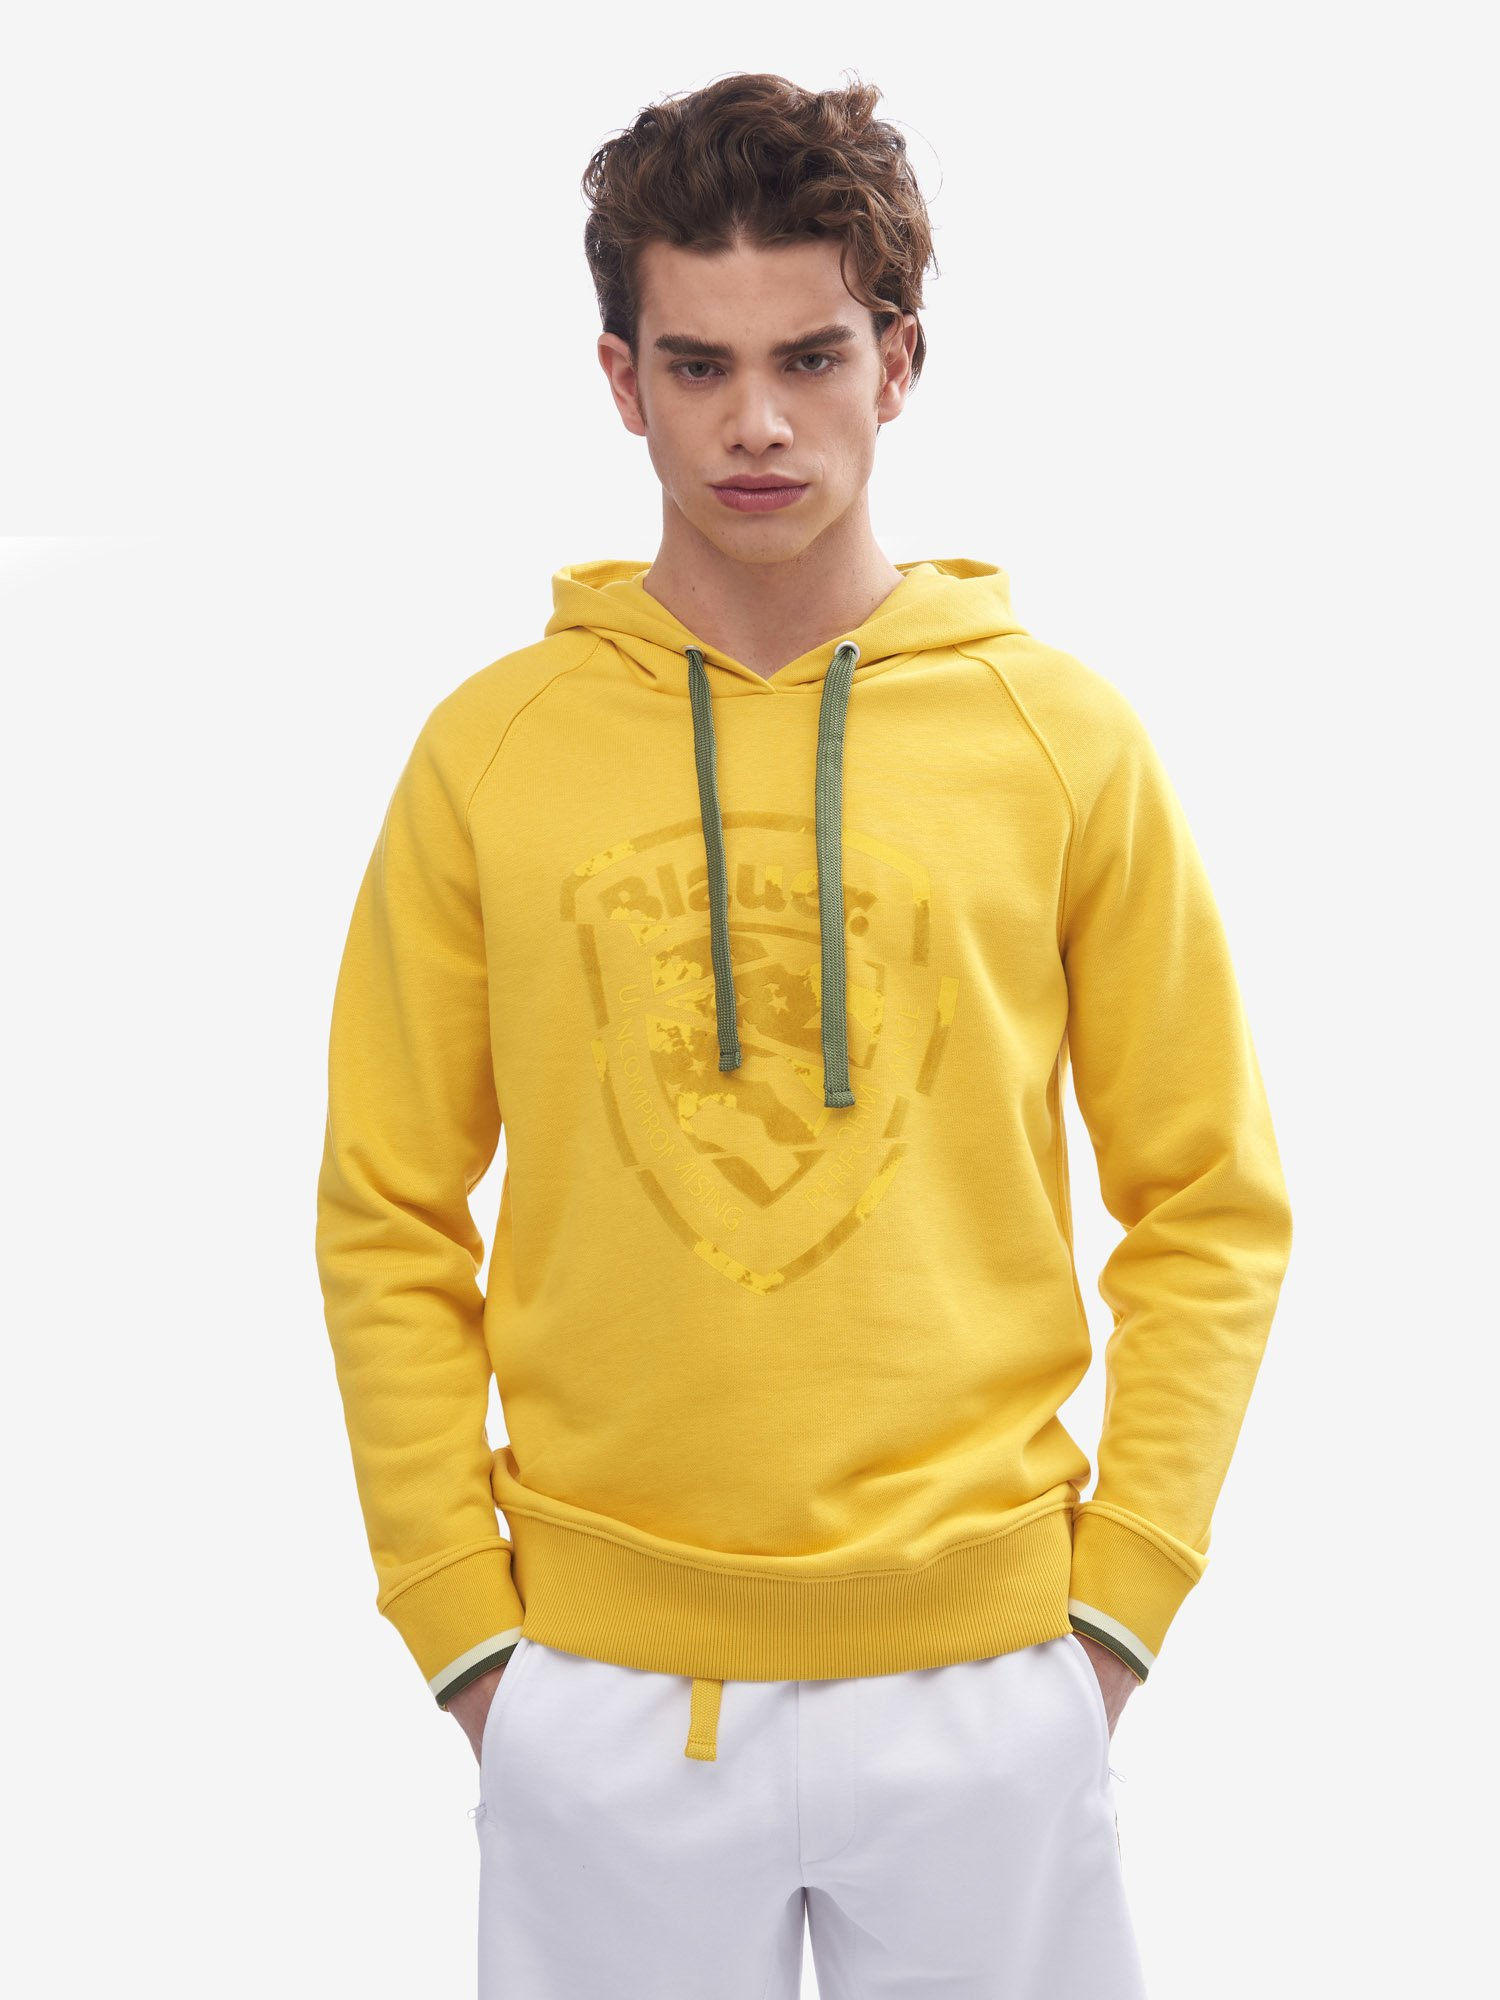 Blauer - HOODED SWEATSHIRT - Canary - Blauer